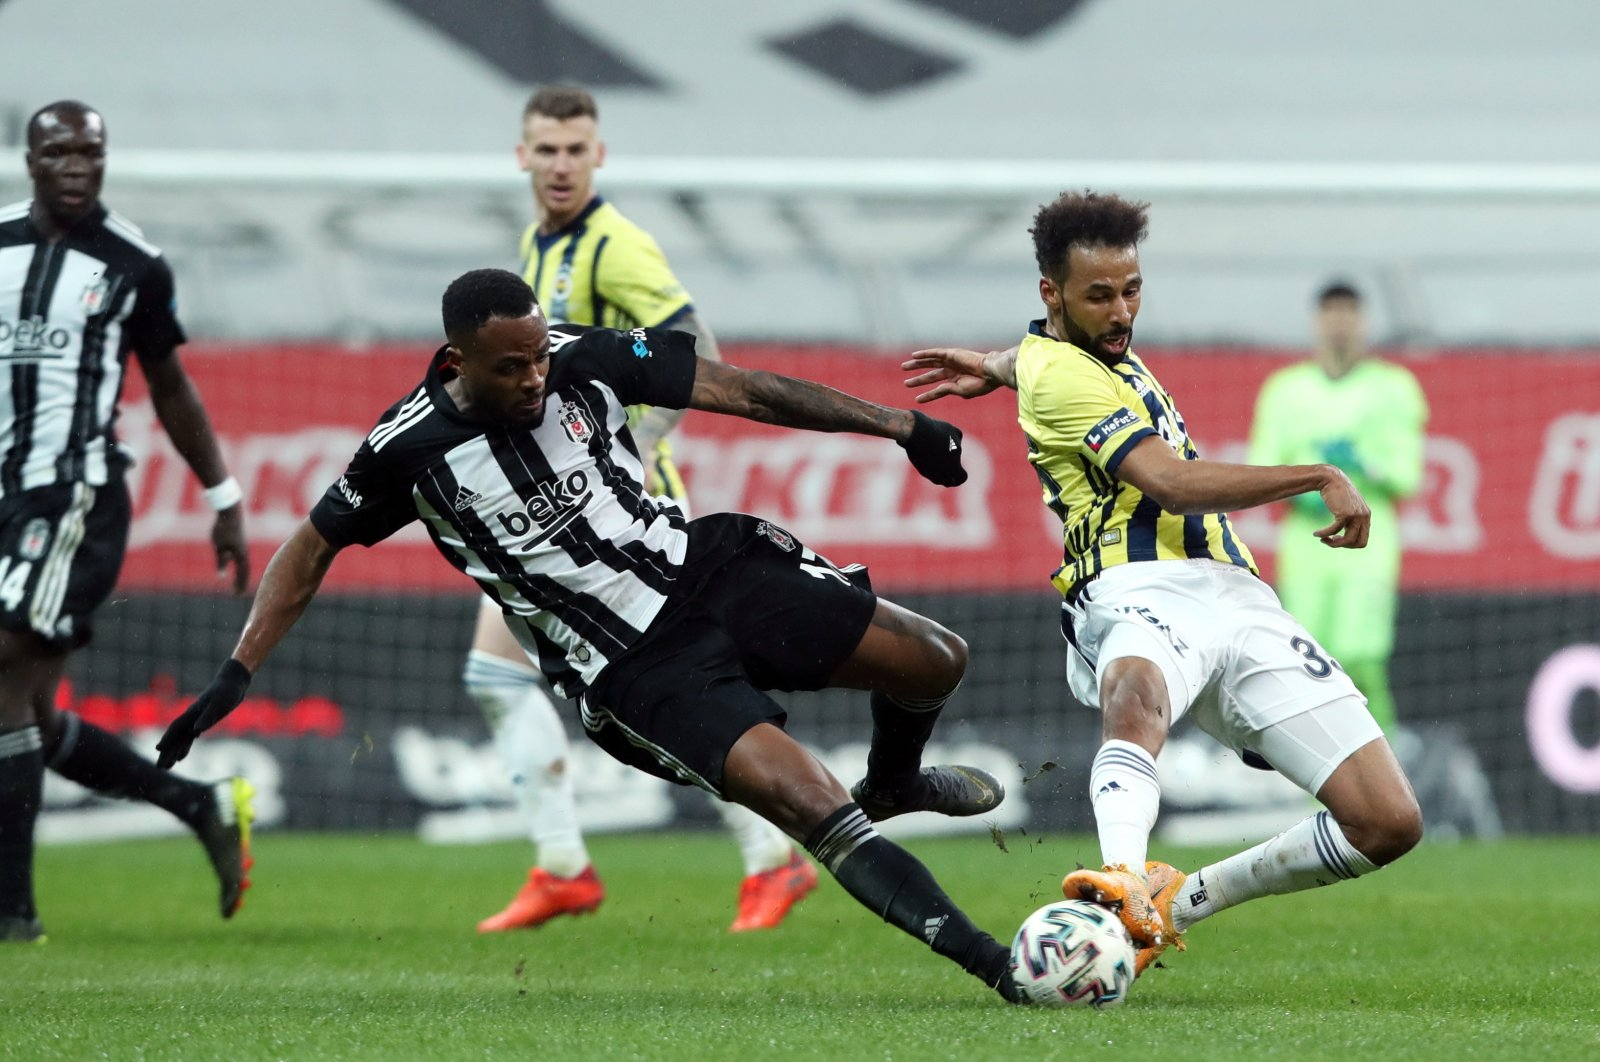 Beşiktaş' Cyle Larin (L) in action against Fenerbahçe's Nazim Sangare (R) during a Turkish Super League match between in Istanbul, Turkey, March 21, 2021. (EPA Photo)